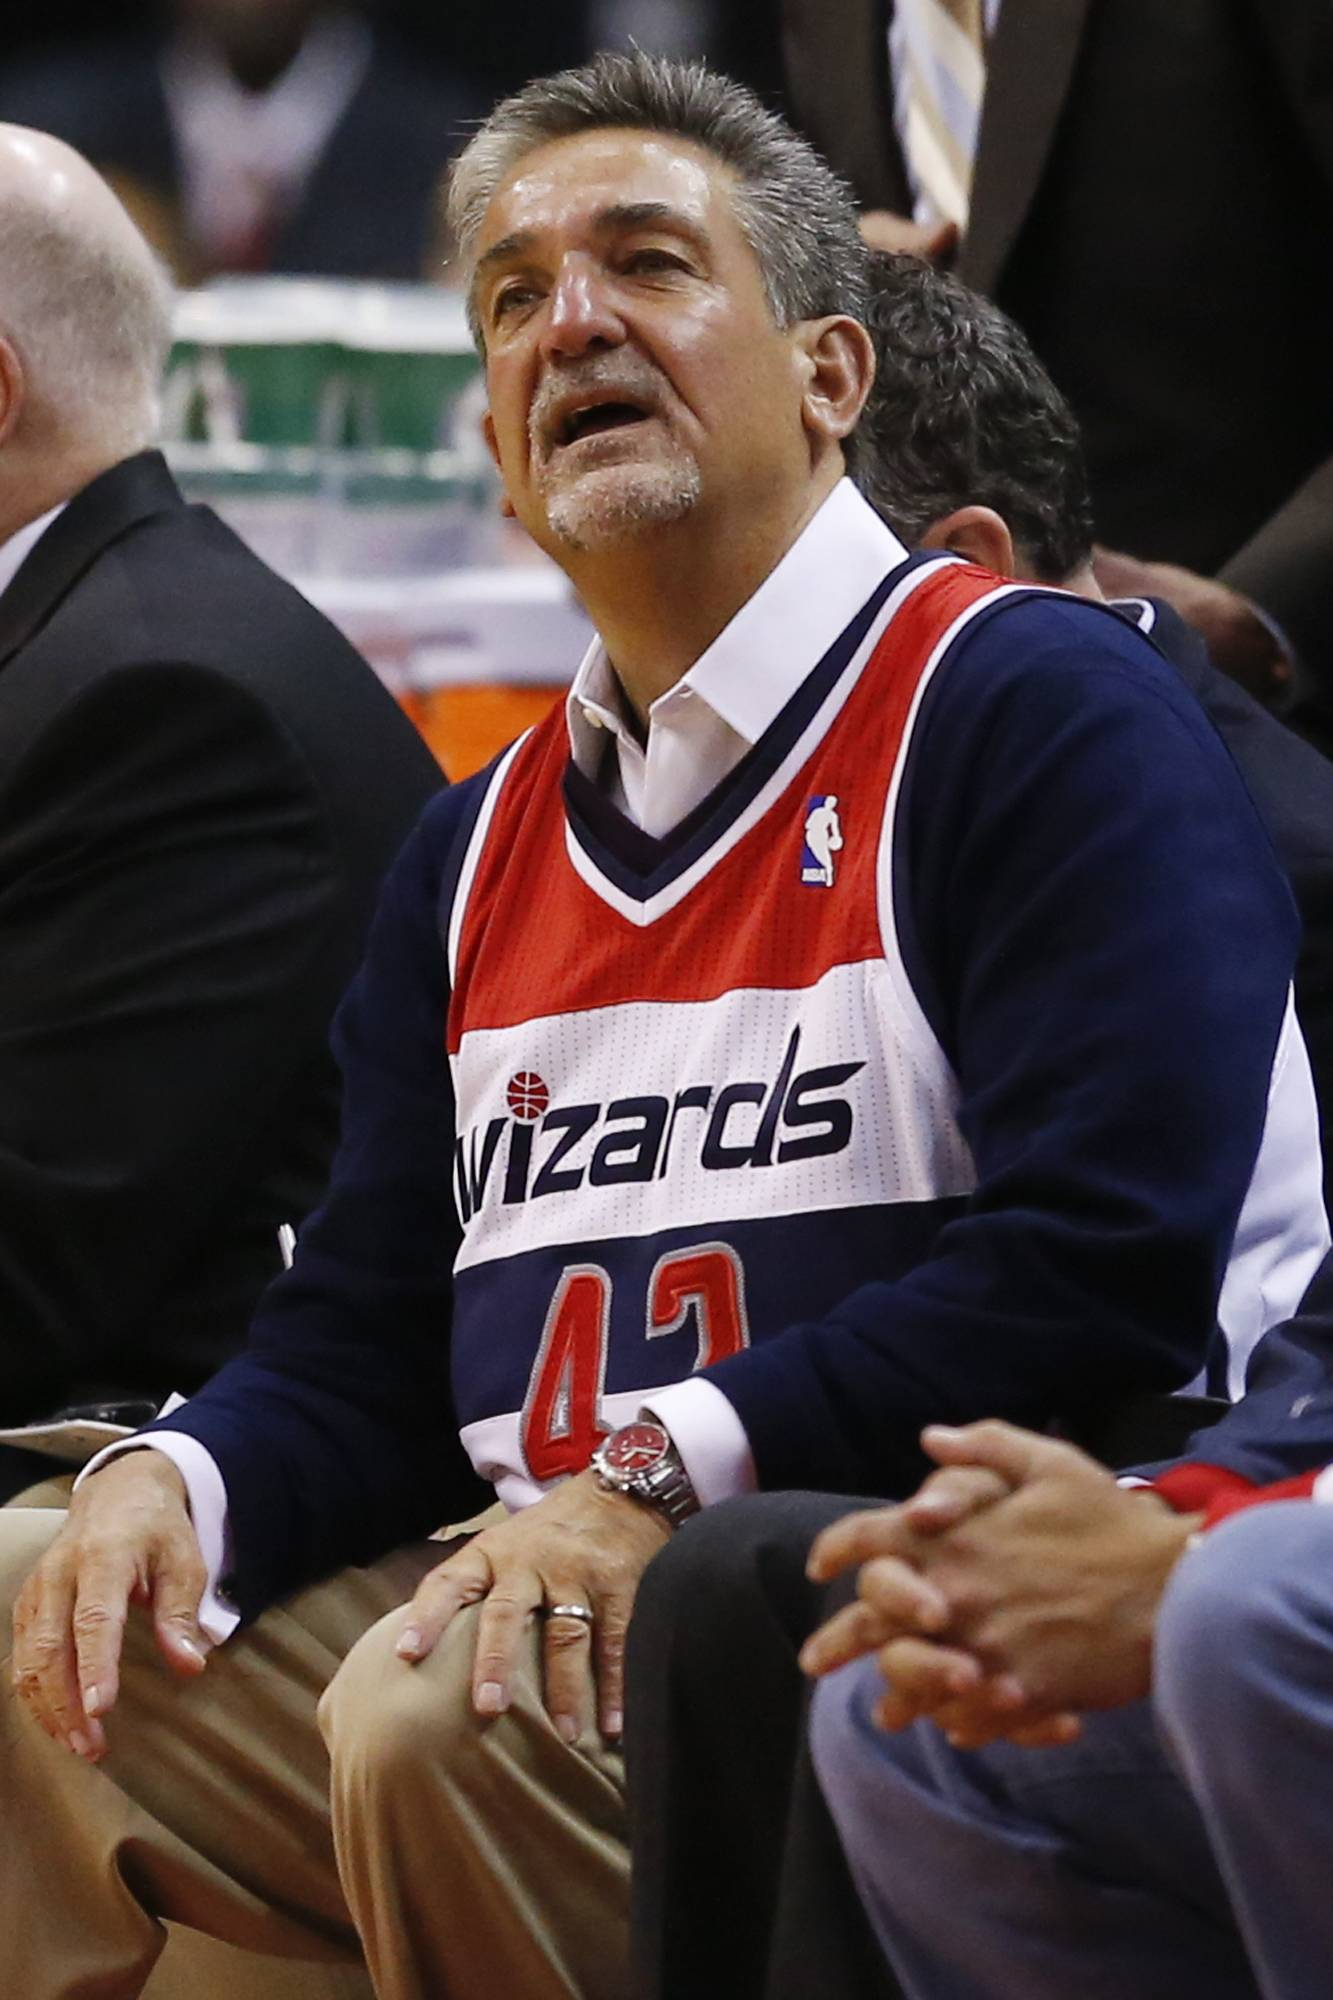 Washington Wizards owner Ted Leonsis, while sitting on the bench wearing Wizards forward Nene's jersey, watches the second half. Nene is serving a one-game suspension.